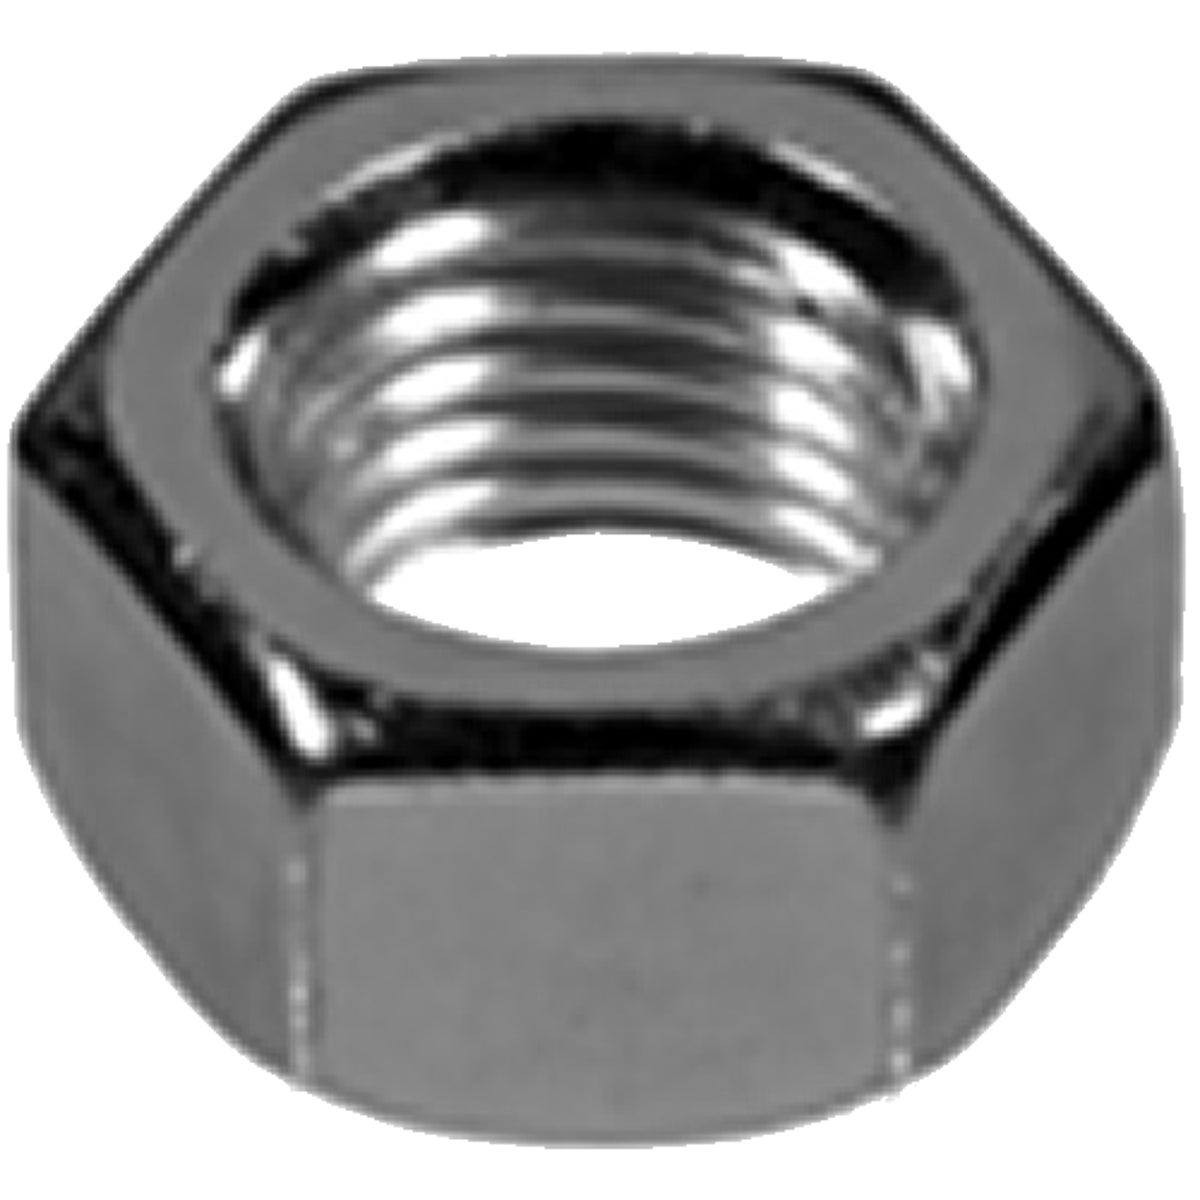 1/4-20 C THREAD HEX NUT - 150003 by Hillman Fastener